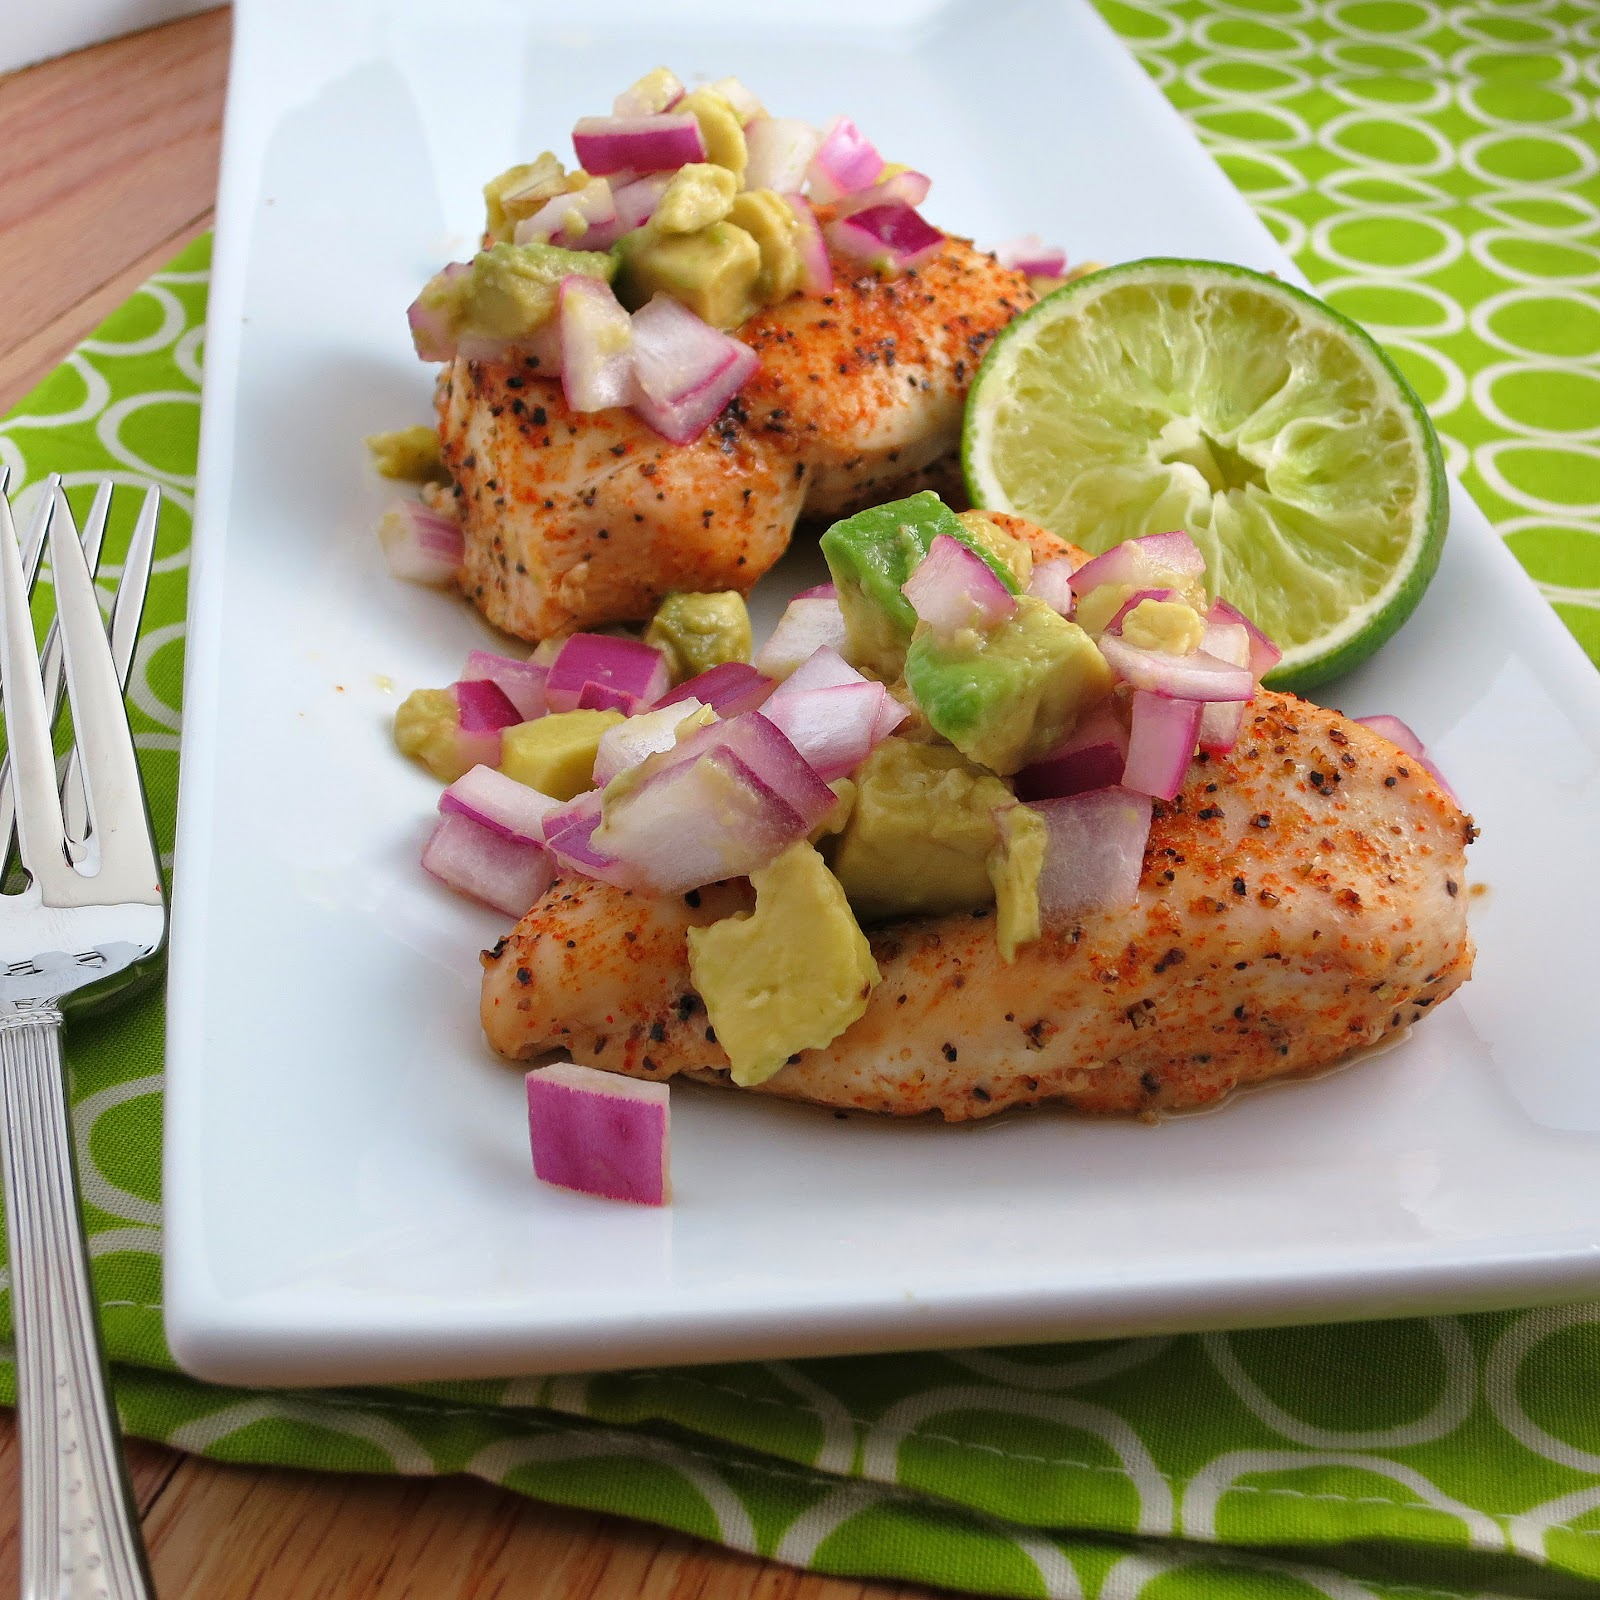 Baked Cayenne-Rubbed Chicken with Avocado Salsa - Alida's Kitchen